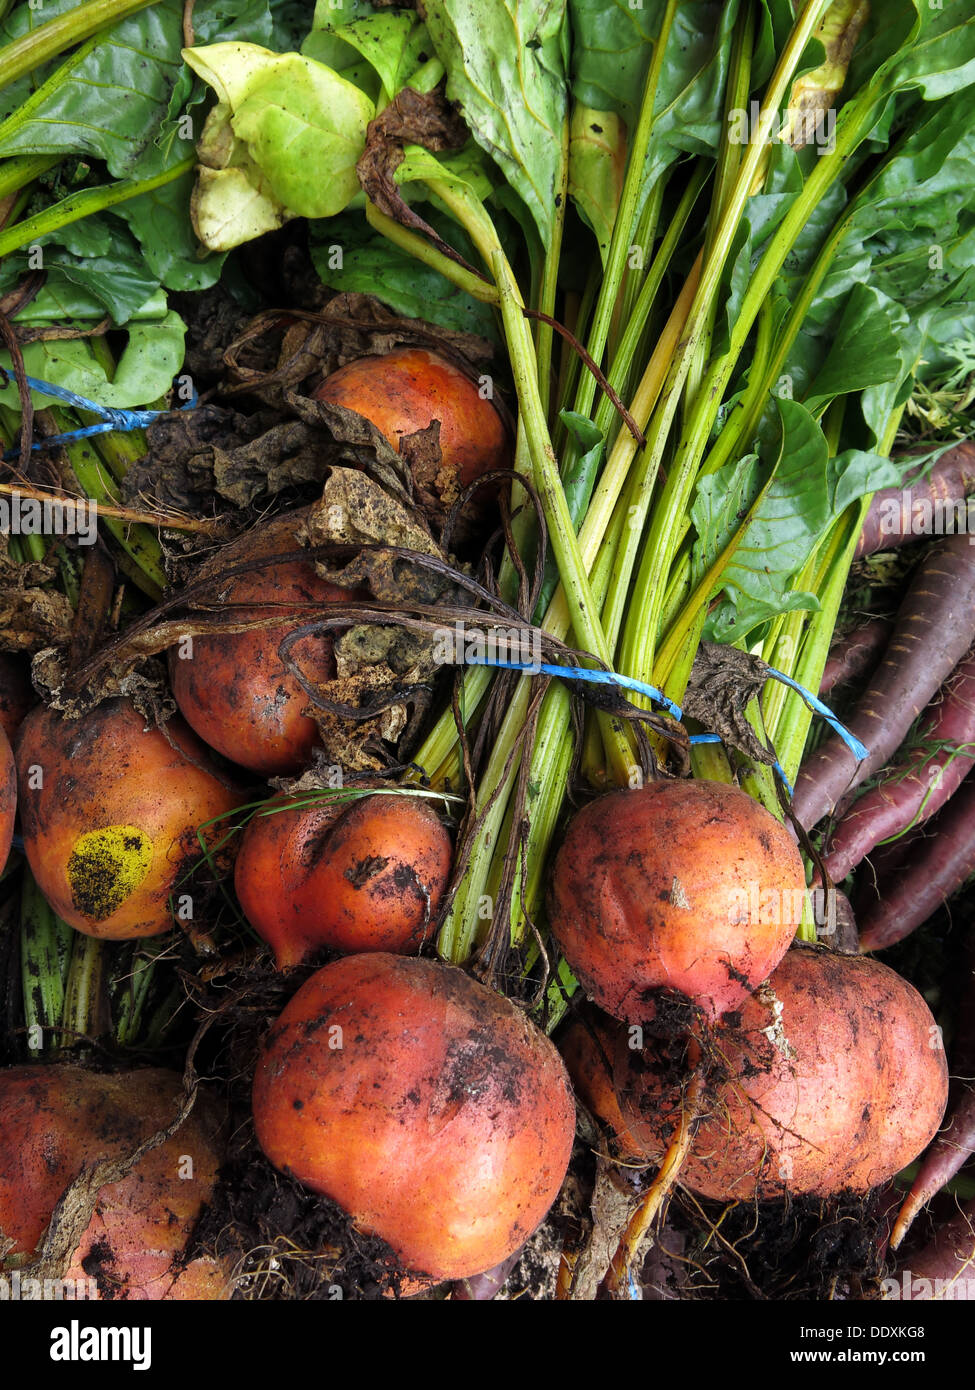 dirty,root,crop,veg,vegetable,mud,muddy,yellow,beetroot,Golden,Beet,Burpees,Golden,heirloom,yellow,root,for,sale,selling,sold,Cheshire,England,UK,English,British,GB,tied,plant,Beta,vulgaris,recipe,beets,UK,GB,British,English,Gold Beet,Yellow Beet,Beta vulgaris,Golden Beets,GoTonySmith,@HotpixUK,Buy Pictures of,Buy Images Of,Images of Goldbeet,Stock Images